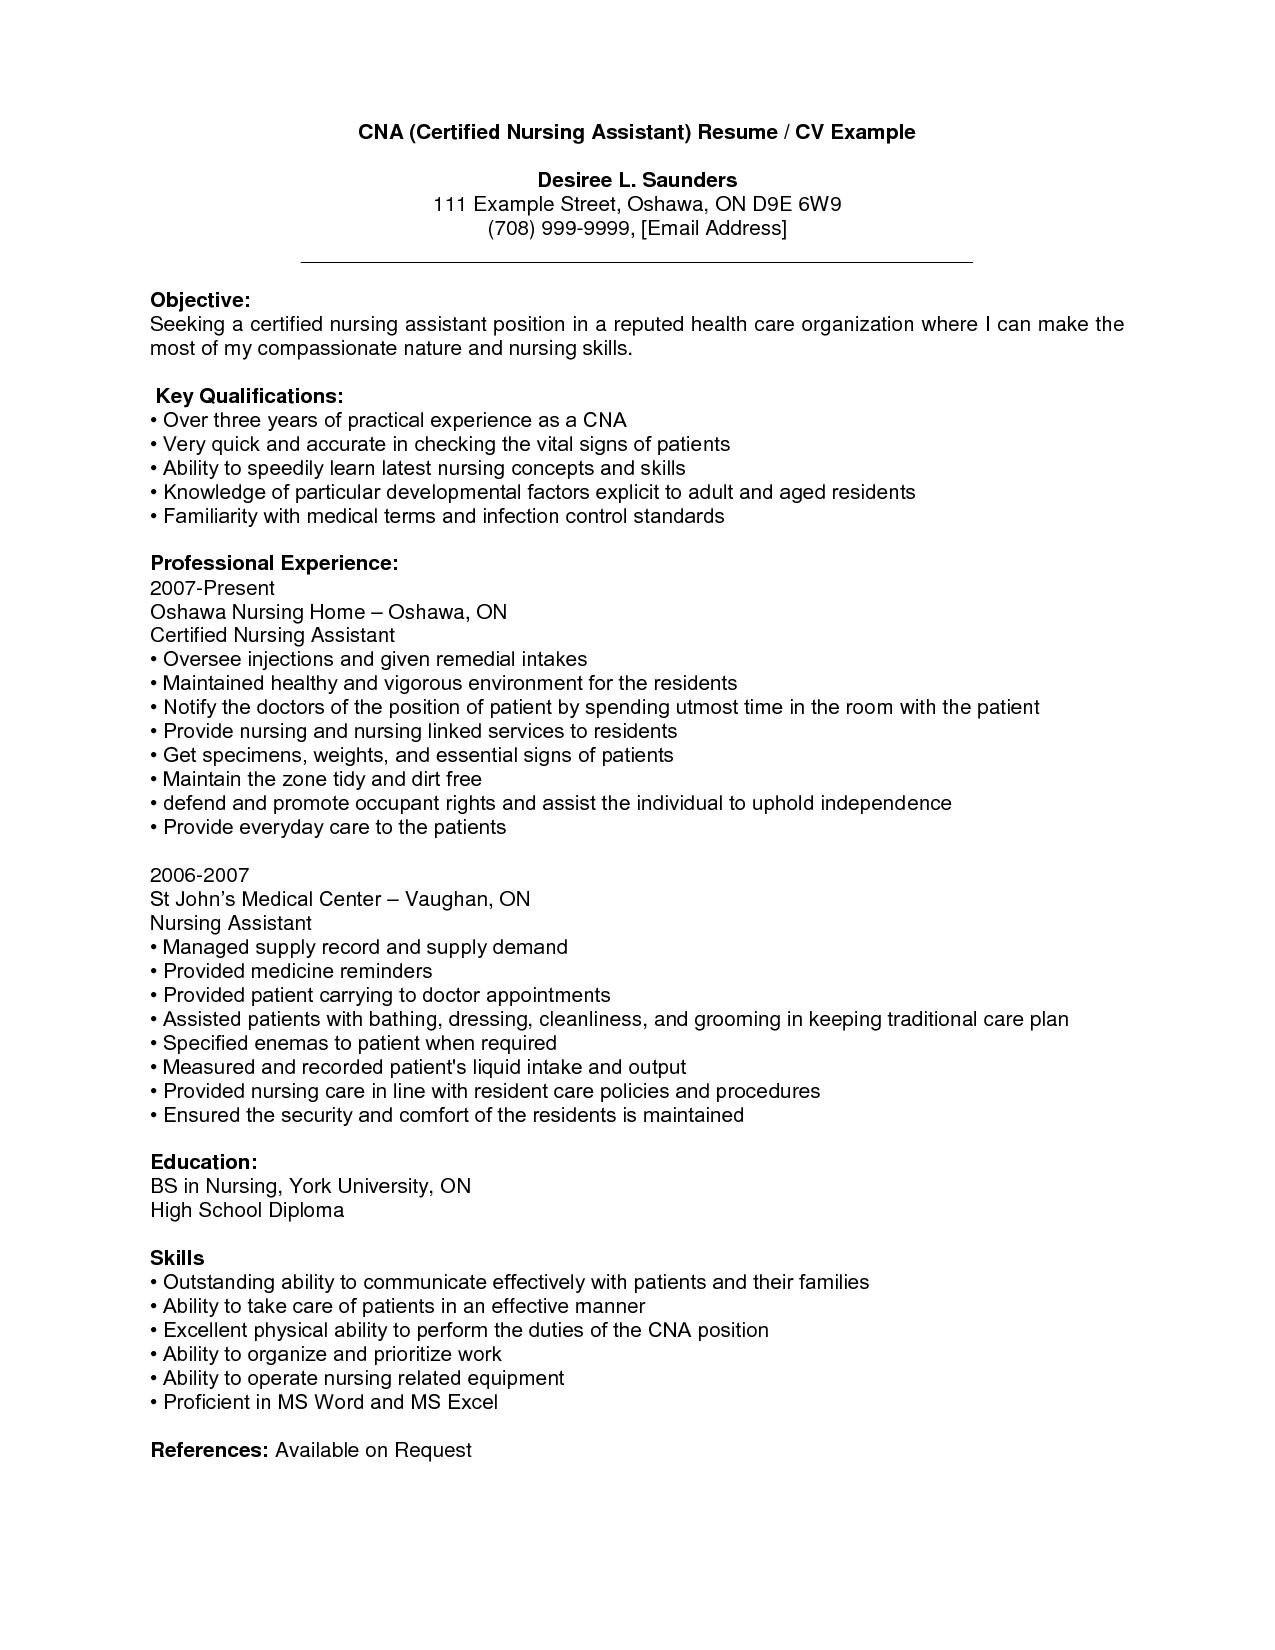 Resume For New Nurse With No Experience Resume Ideas